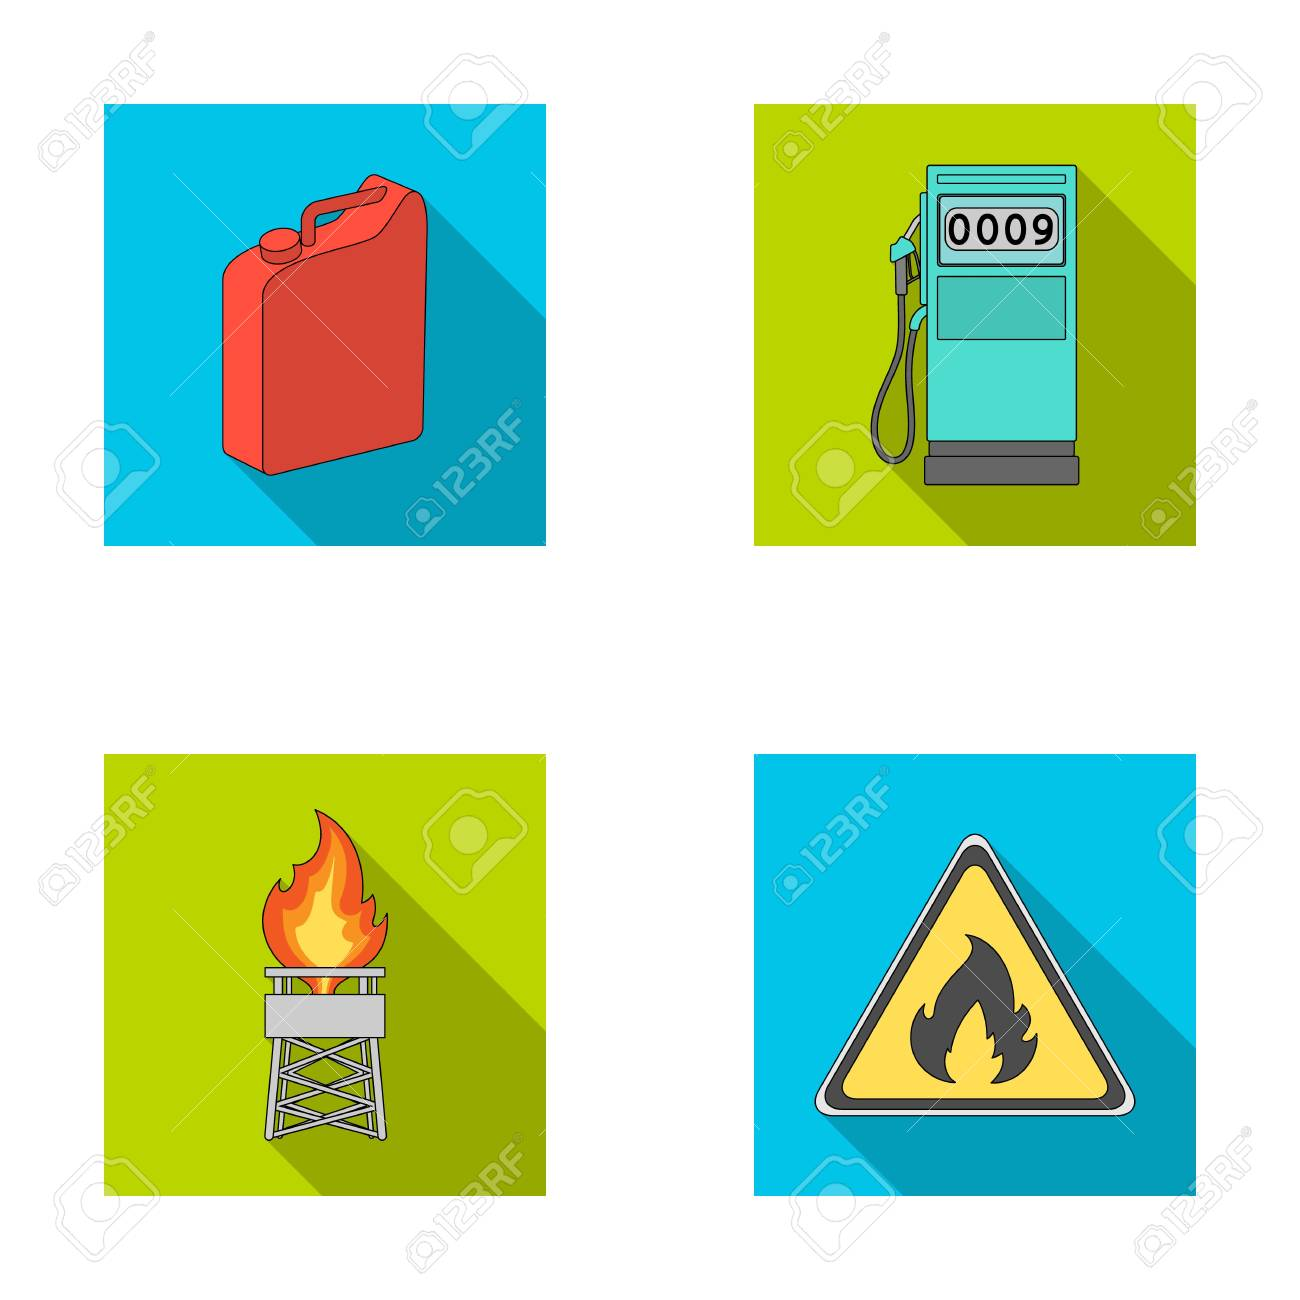 Canister for gasoline, gas station, tower, warning sign  Oil